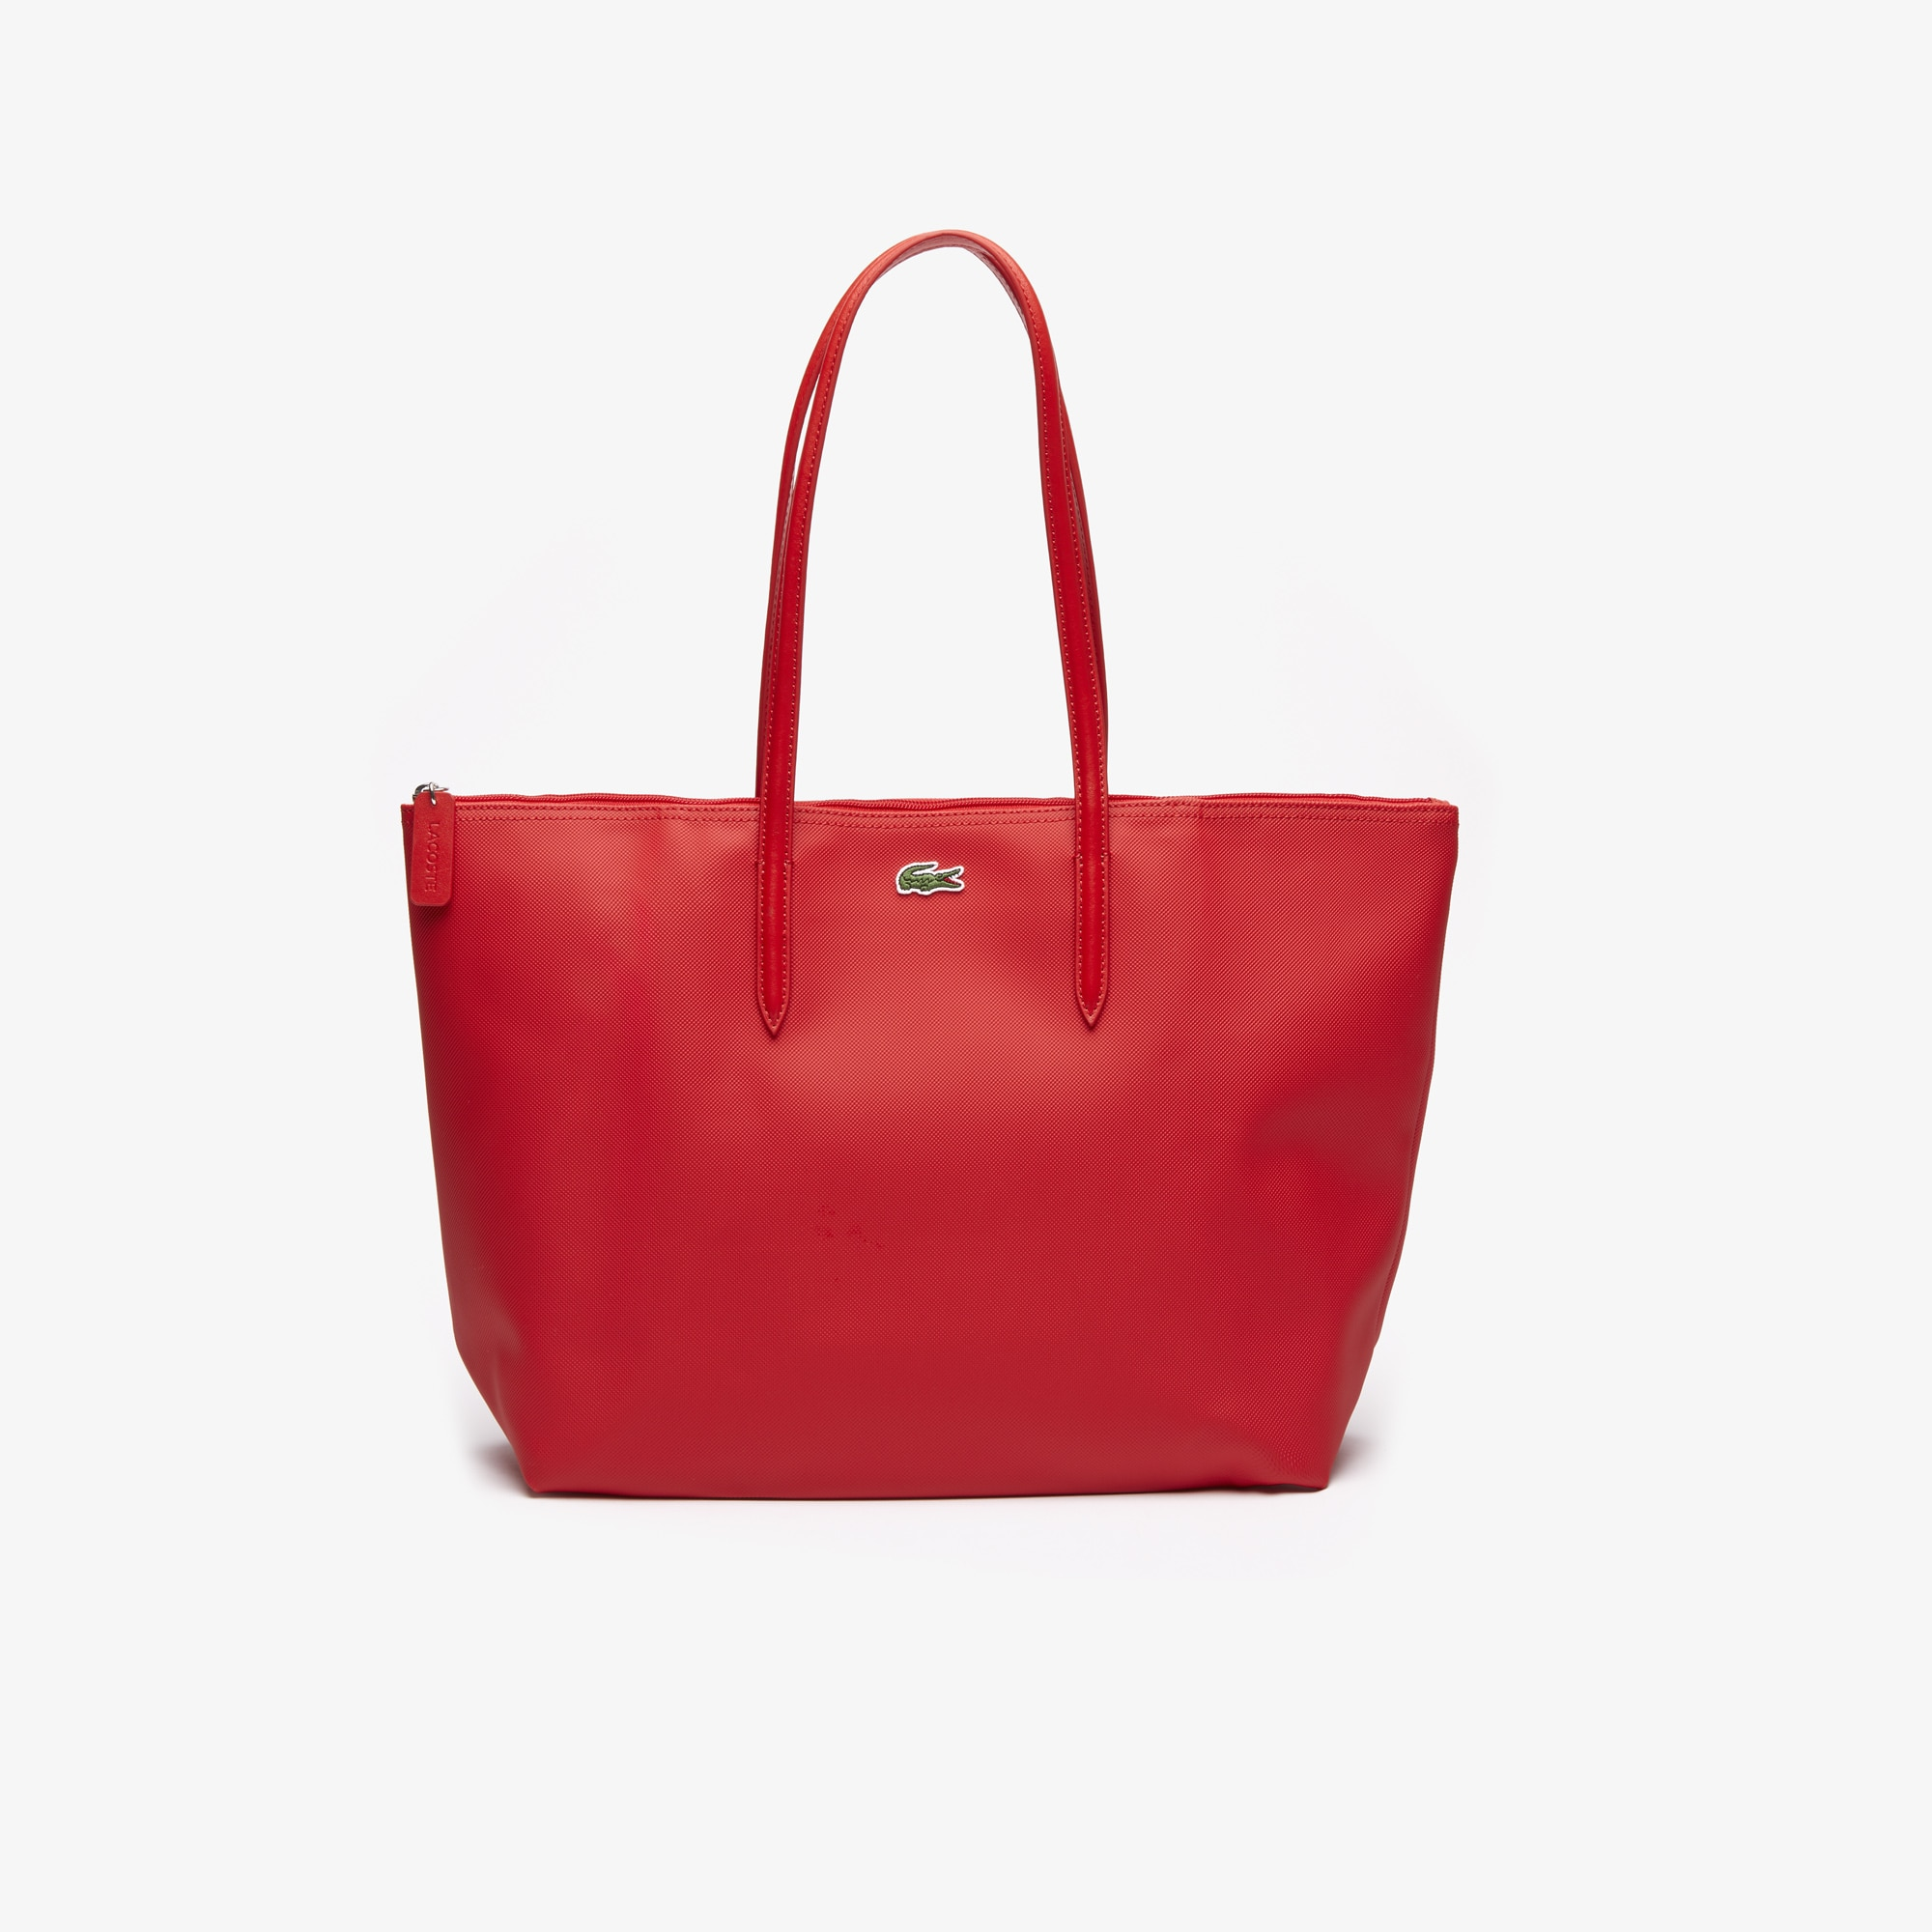 88ded94fe48 Bags & Handbags Collection   Women's Leather Goods   LACOSTE